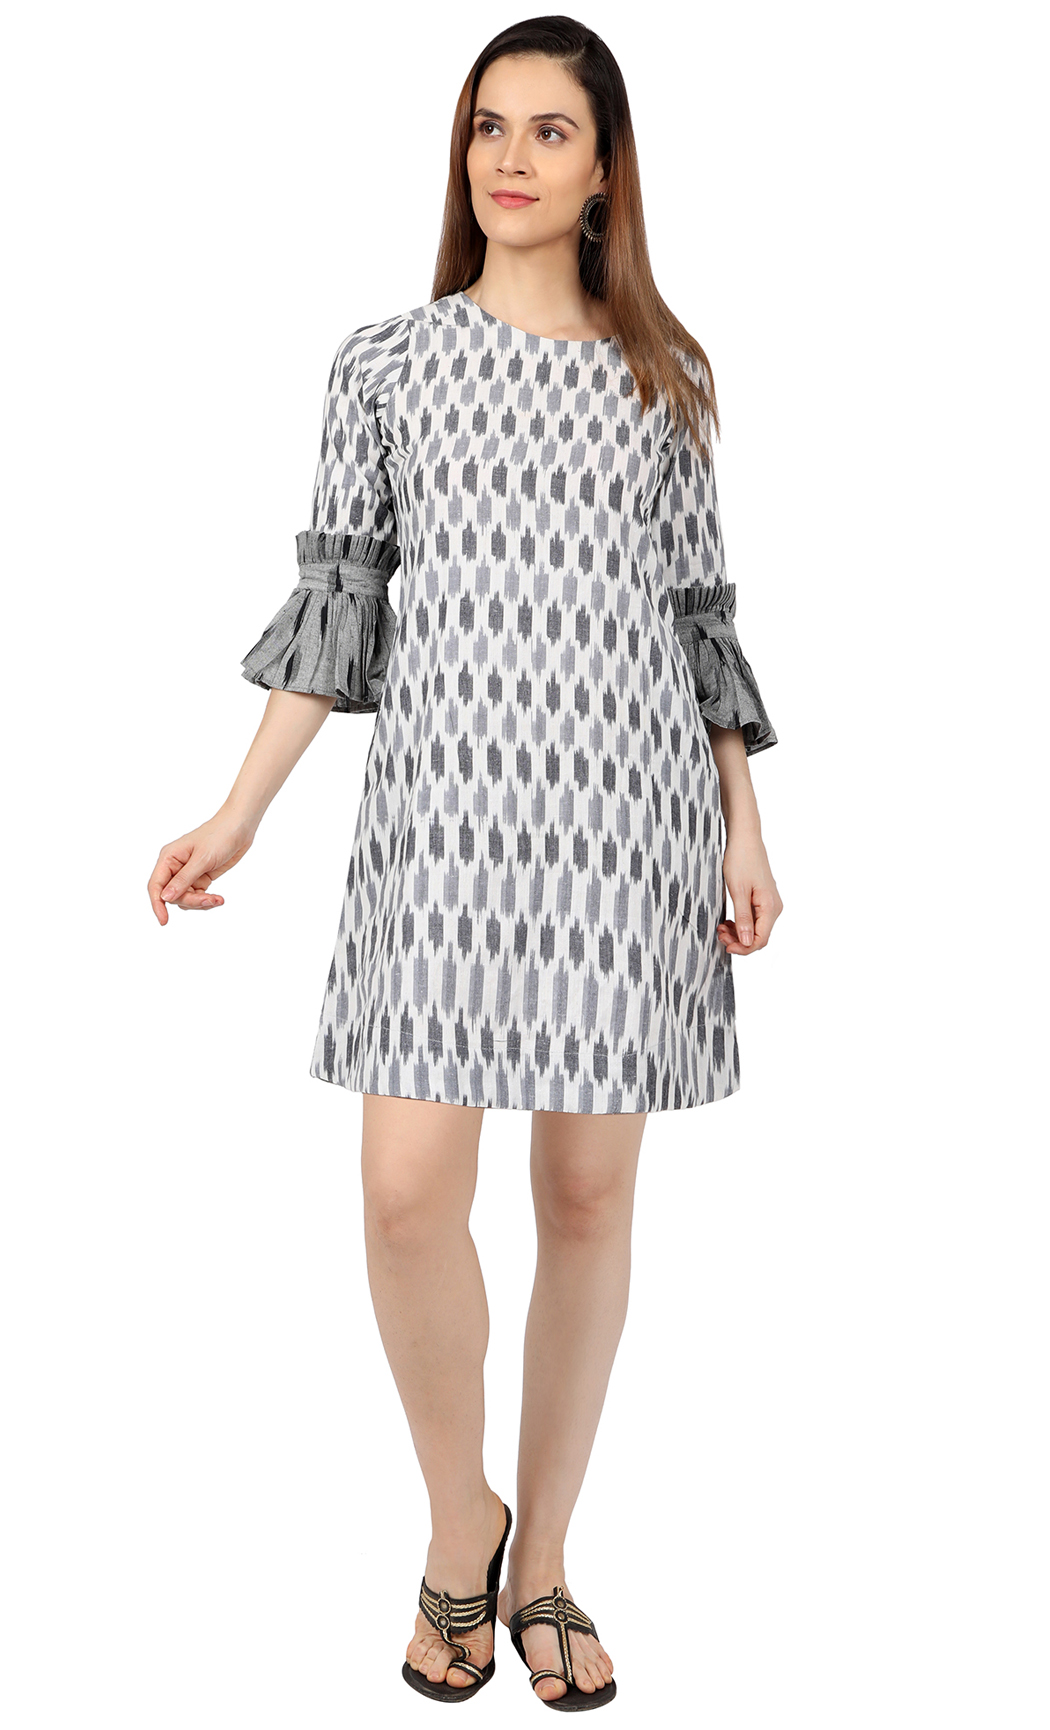 Grey and White Ikat Dress. Buy Online